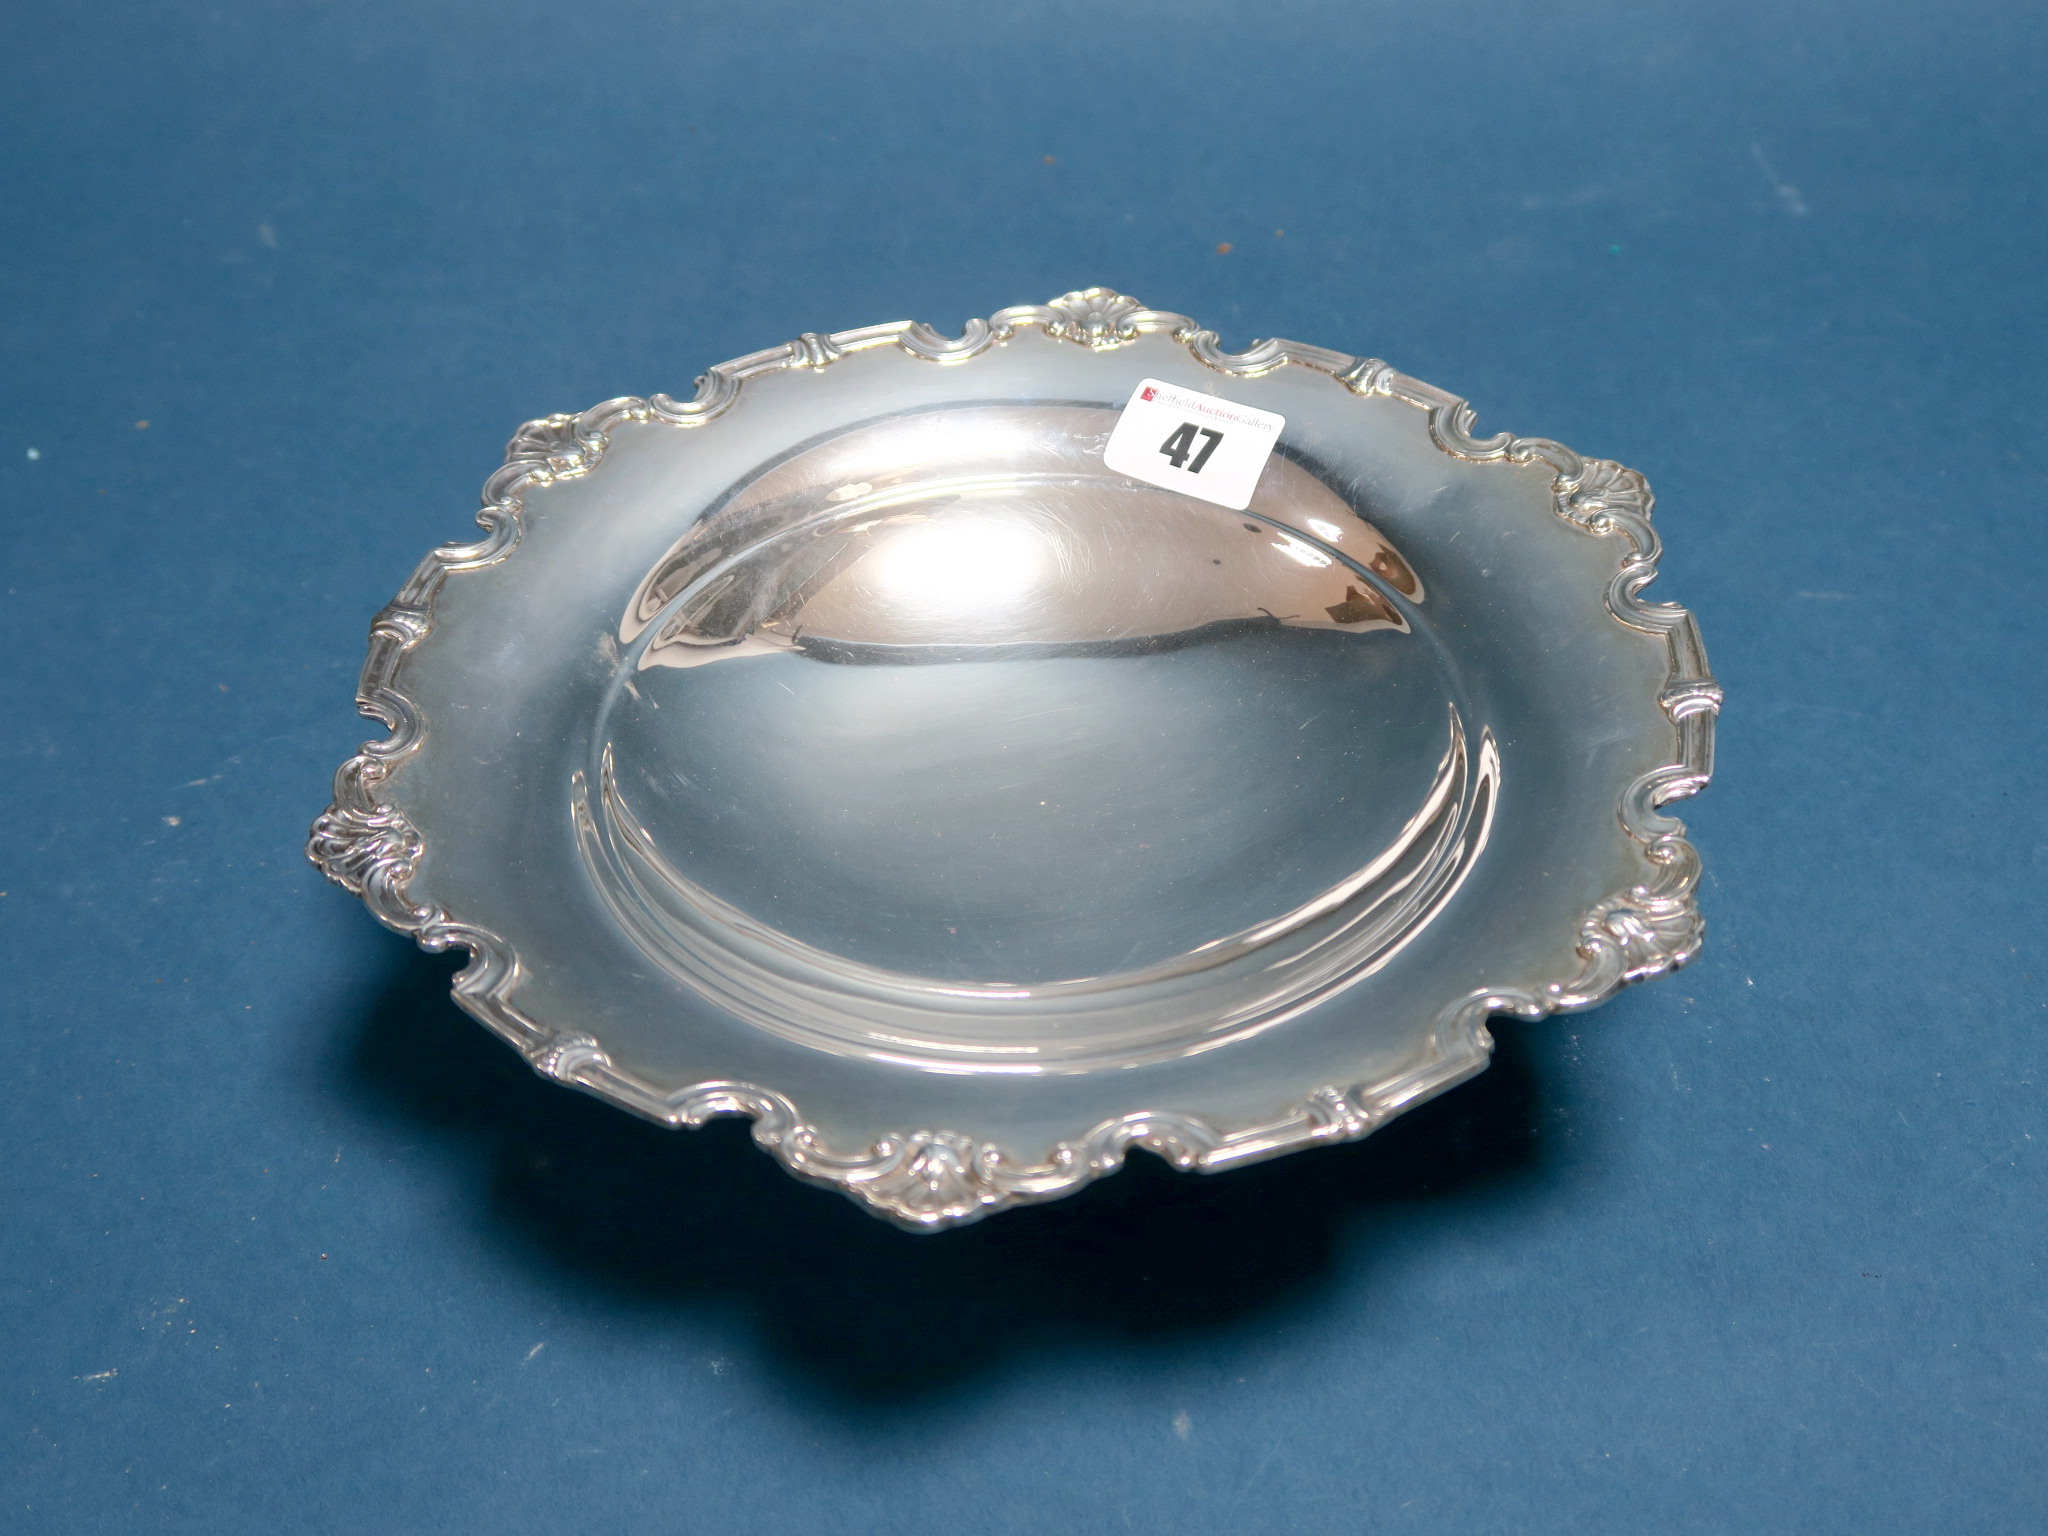 Lot 47 - A Hallmarked Silver Dish, Mappin & Webb, Sheffield 1944, of shaped circular design, raised on